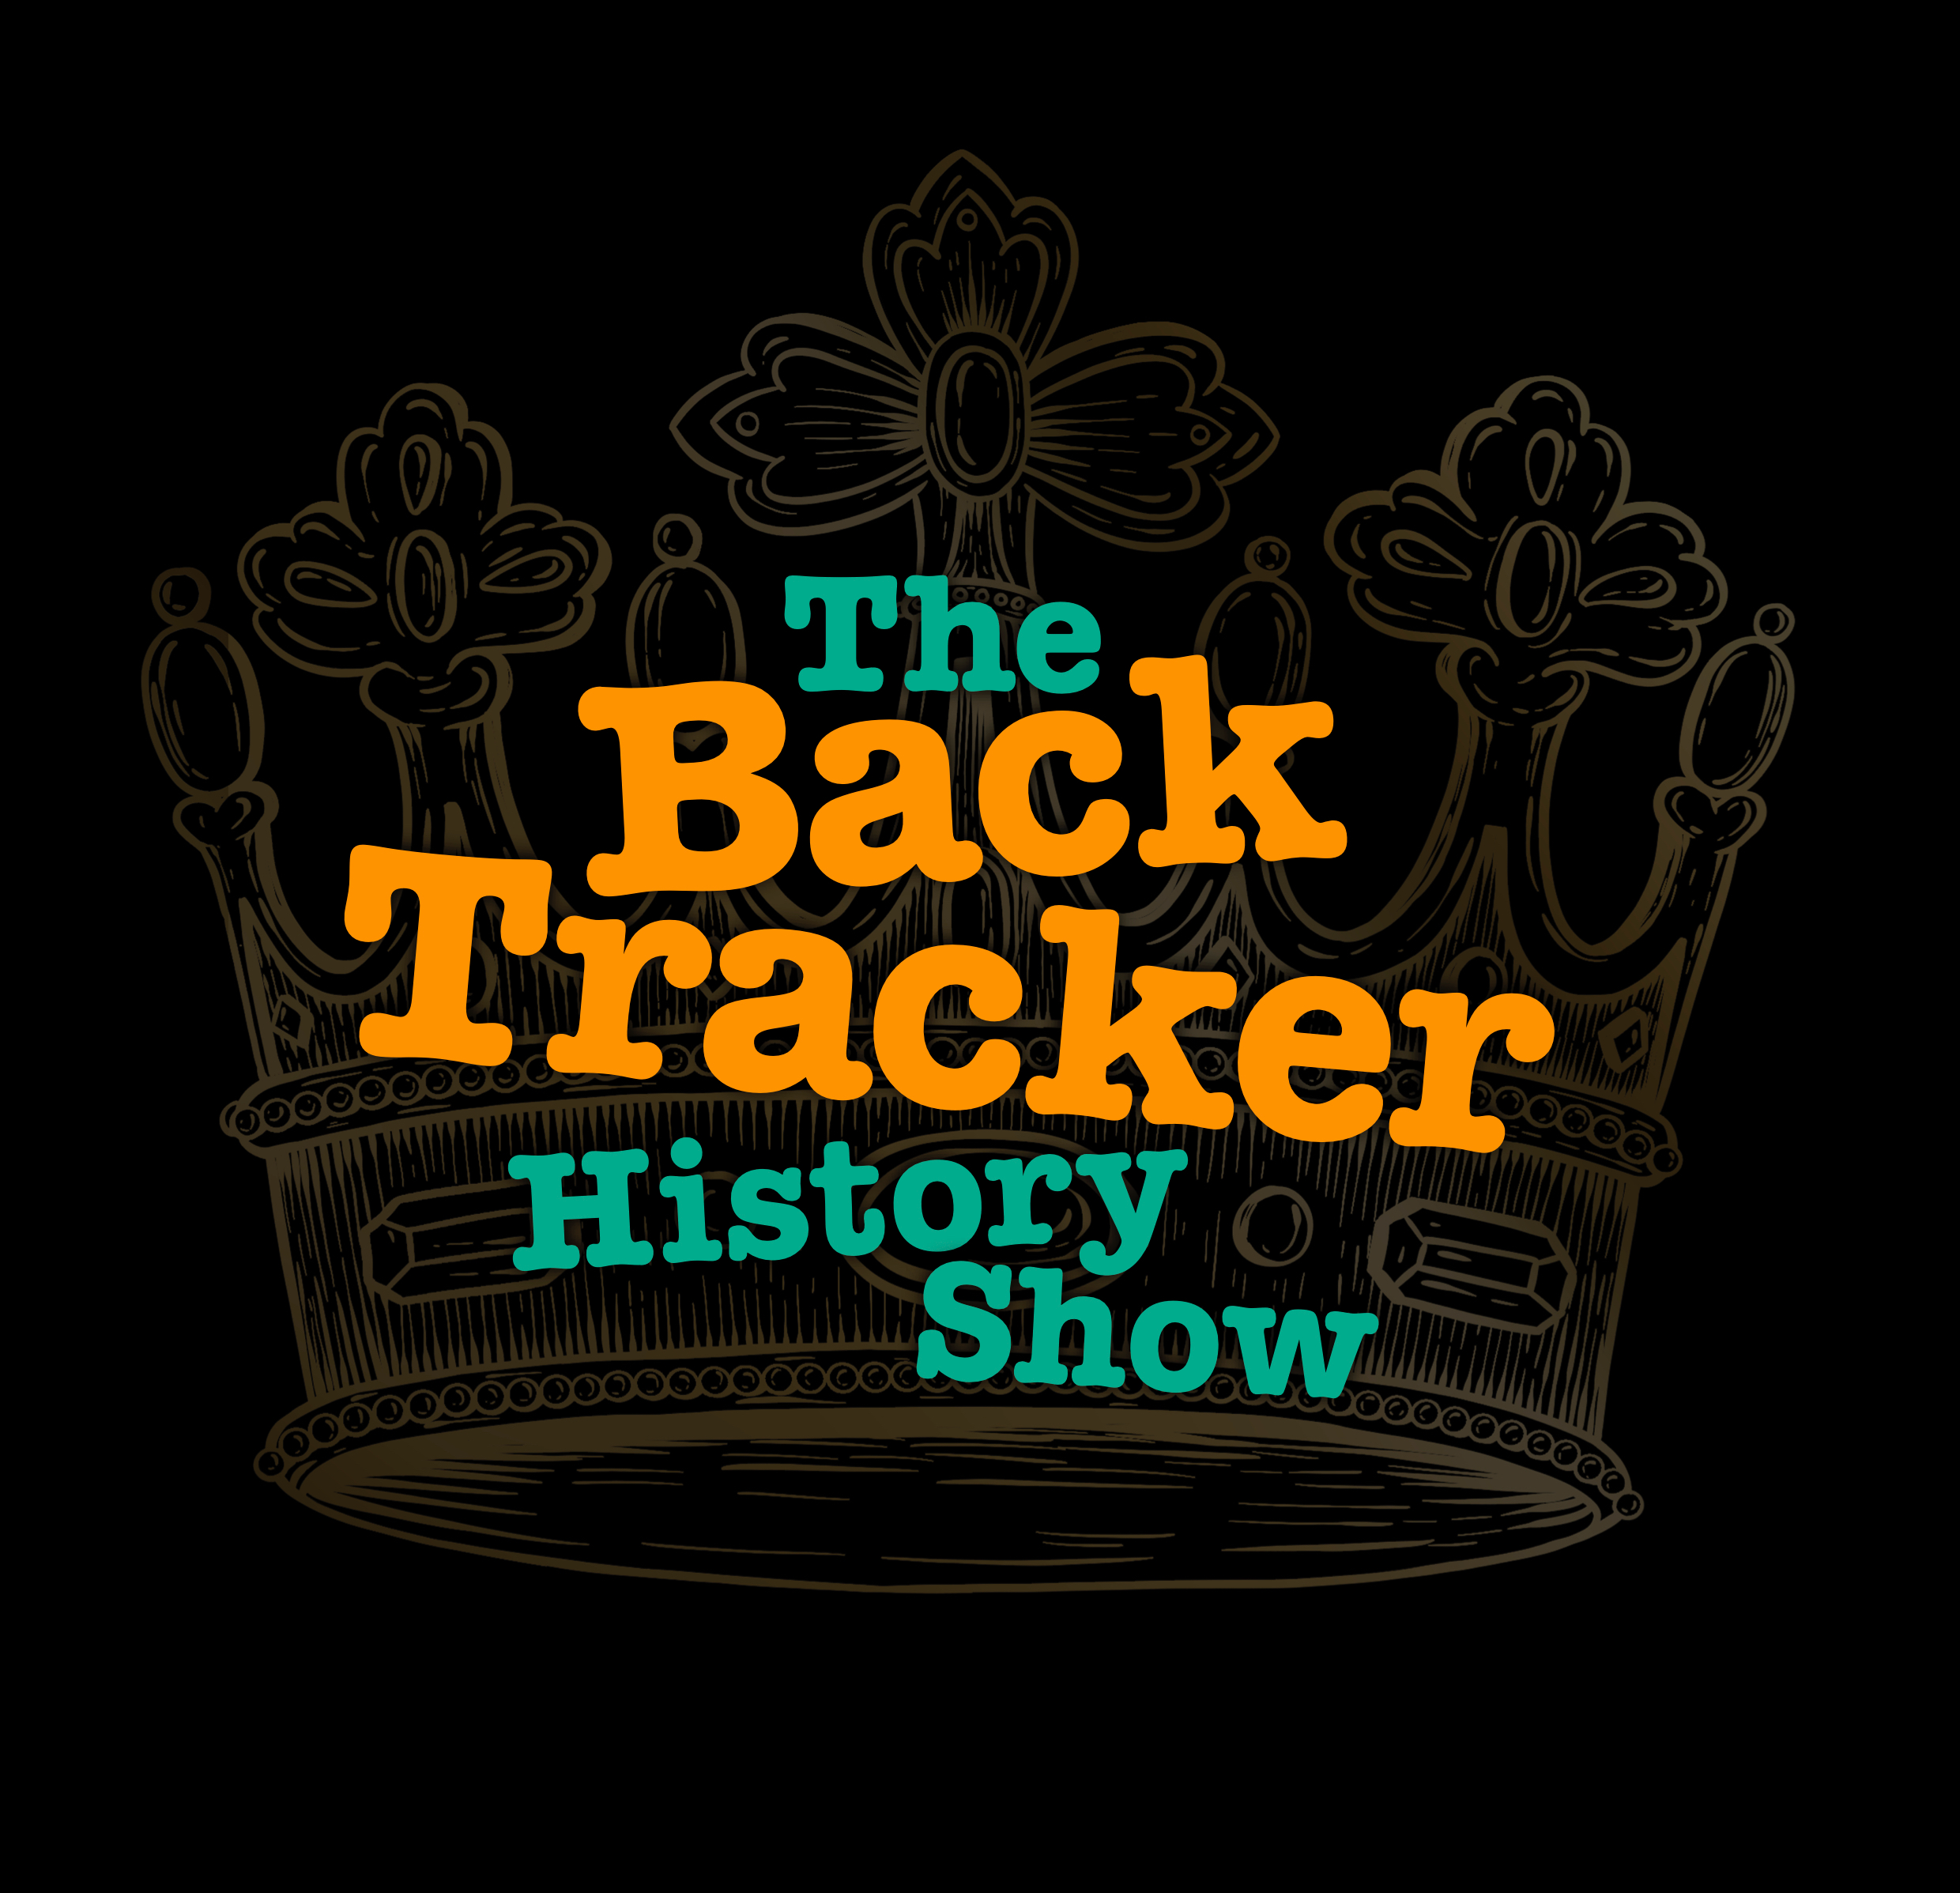 The Backtracker History Show